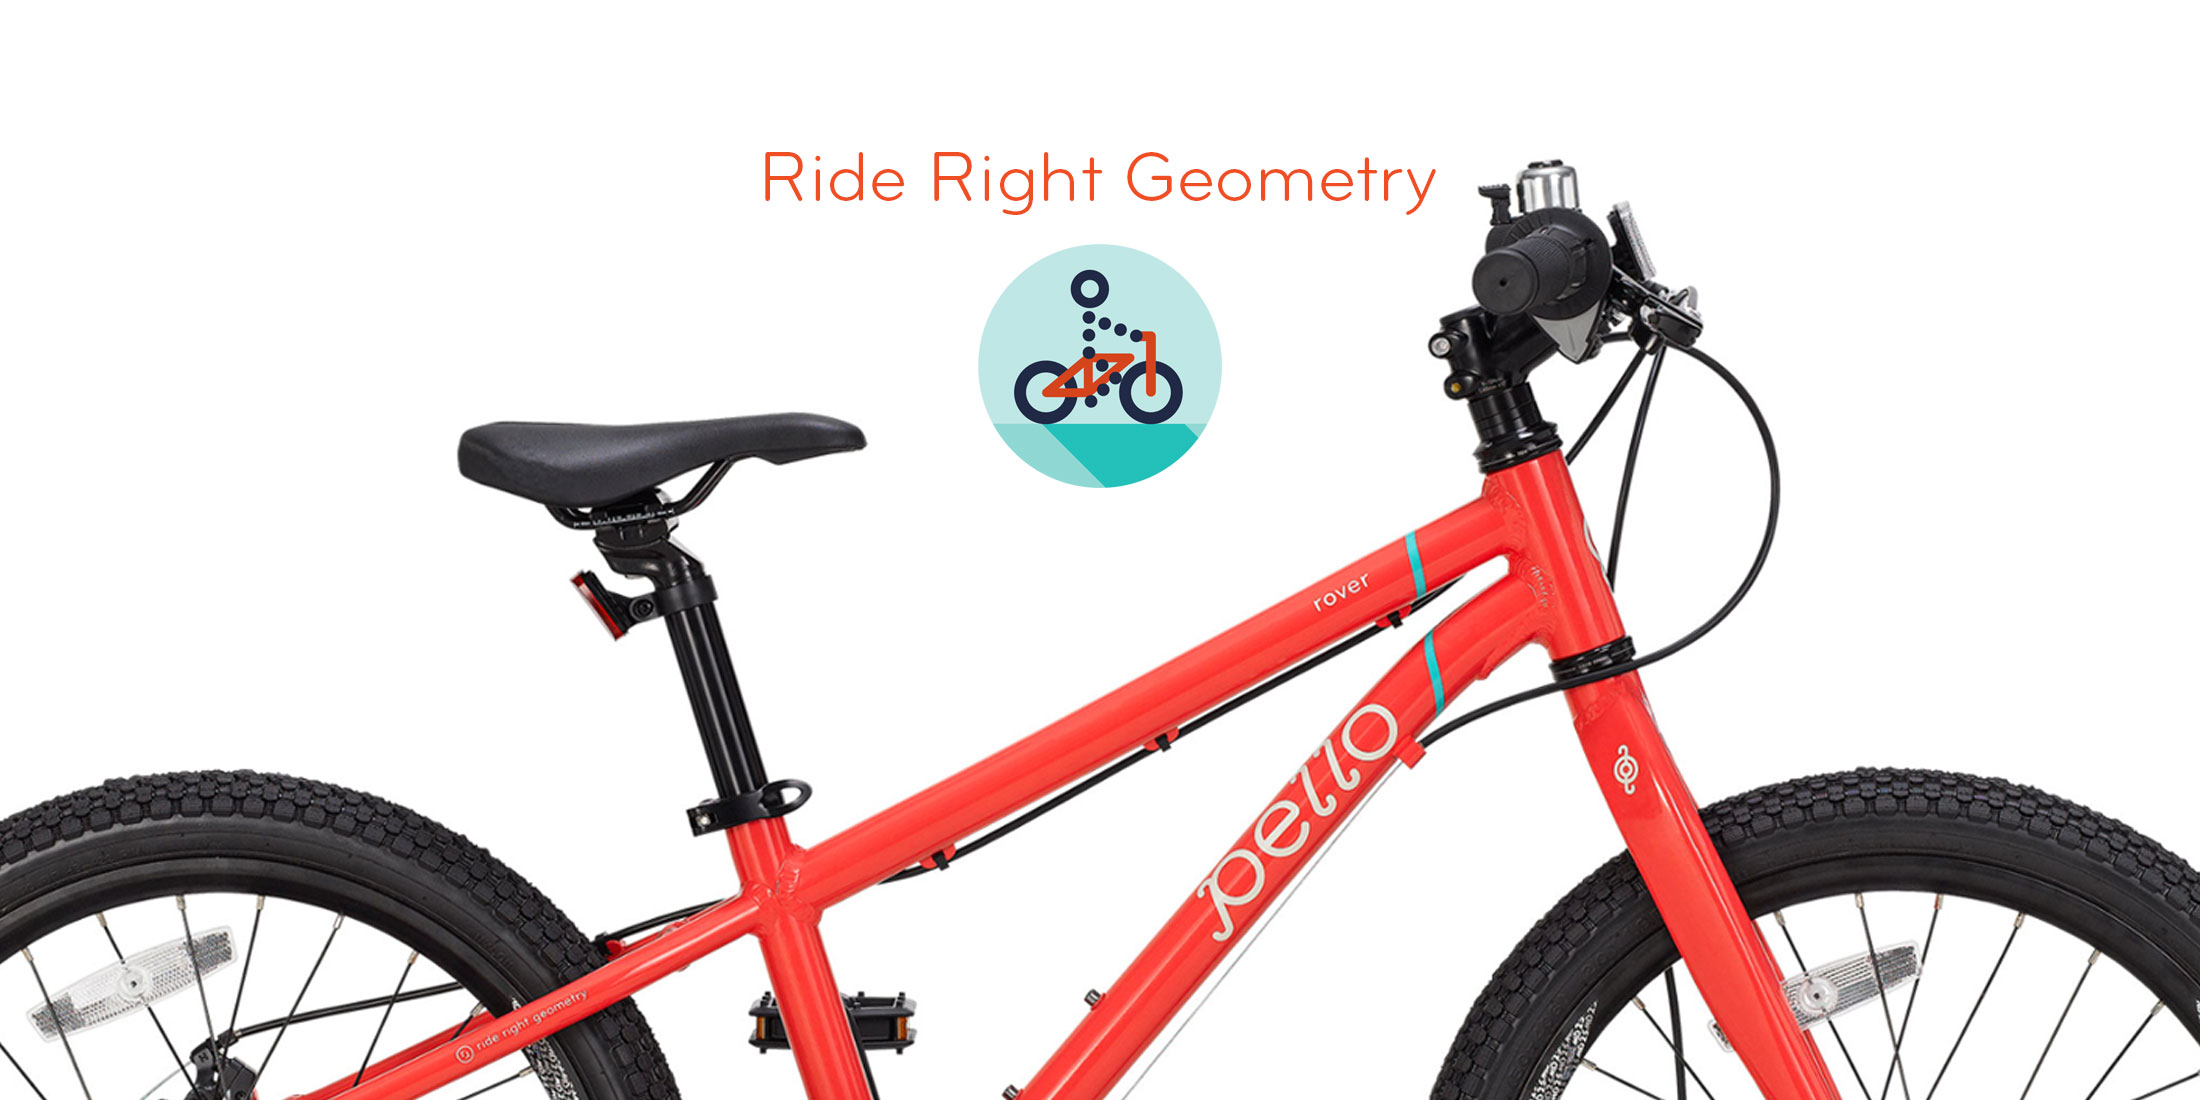 pello-rover-ride-right-geometry.jpg